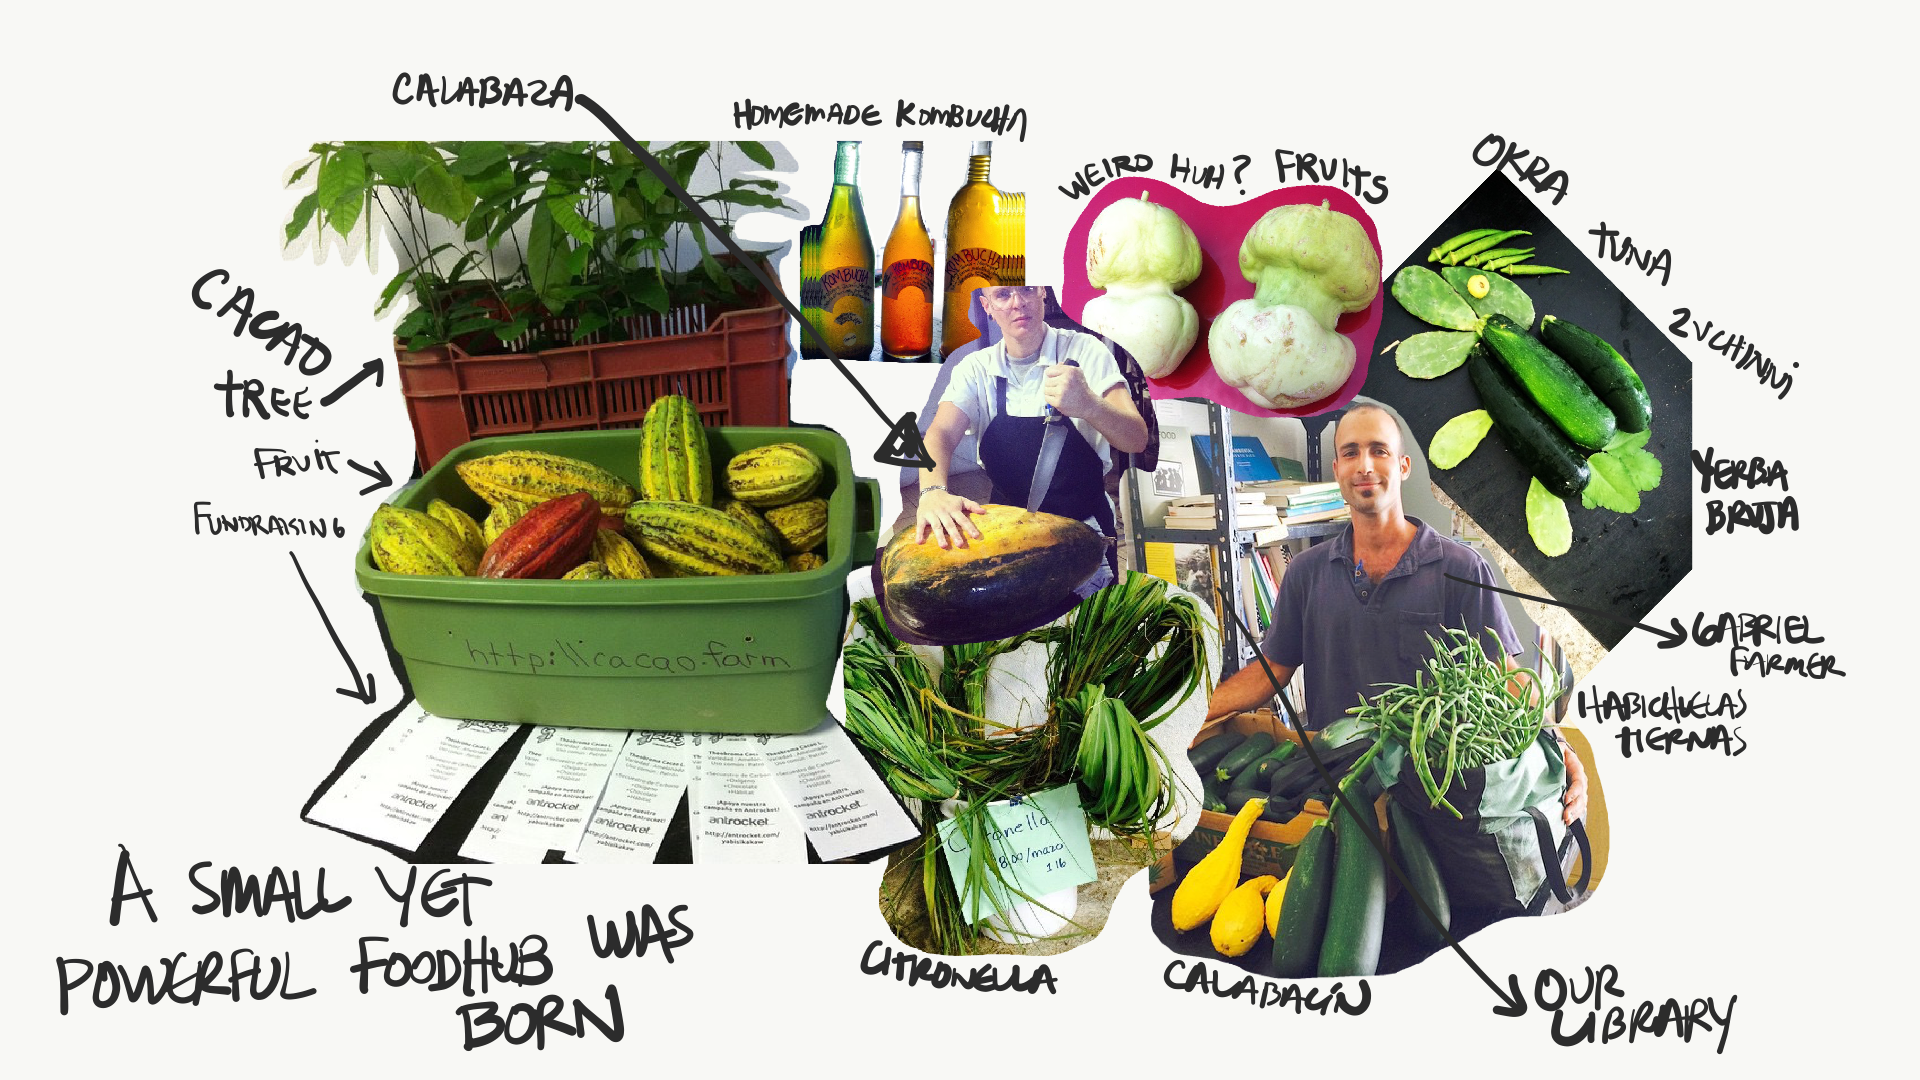 2010 - 2012: - El Departamento de la Comida started in 2010 as Puerto Rico's first multi-farm CSA. We purchased and picked up produce from an average of 10 farms per week and distributed to 150 clients at drop-off locations in San Juan, Caguas and Ponce.